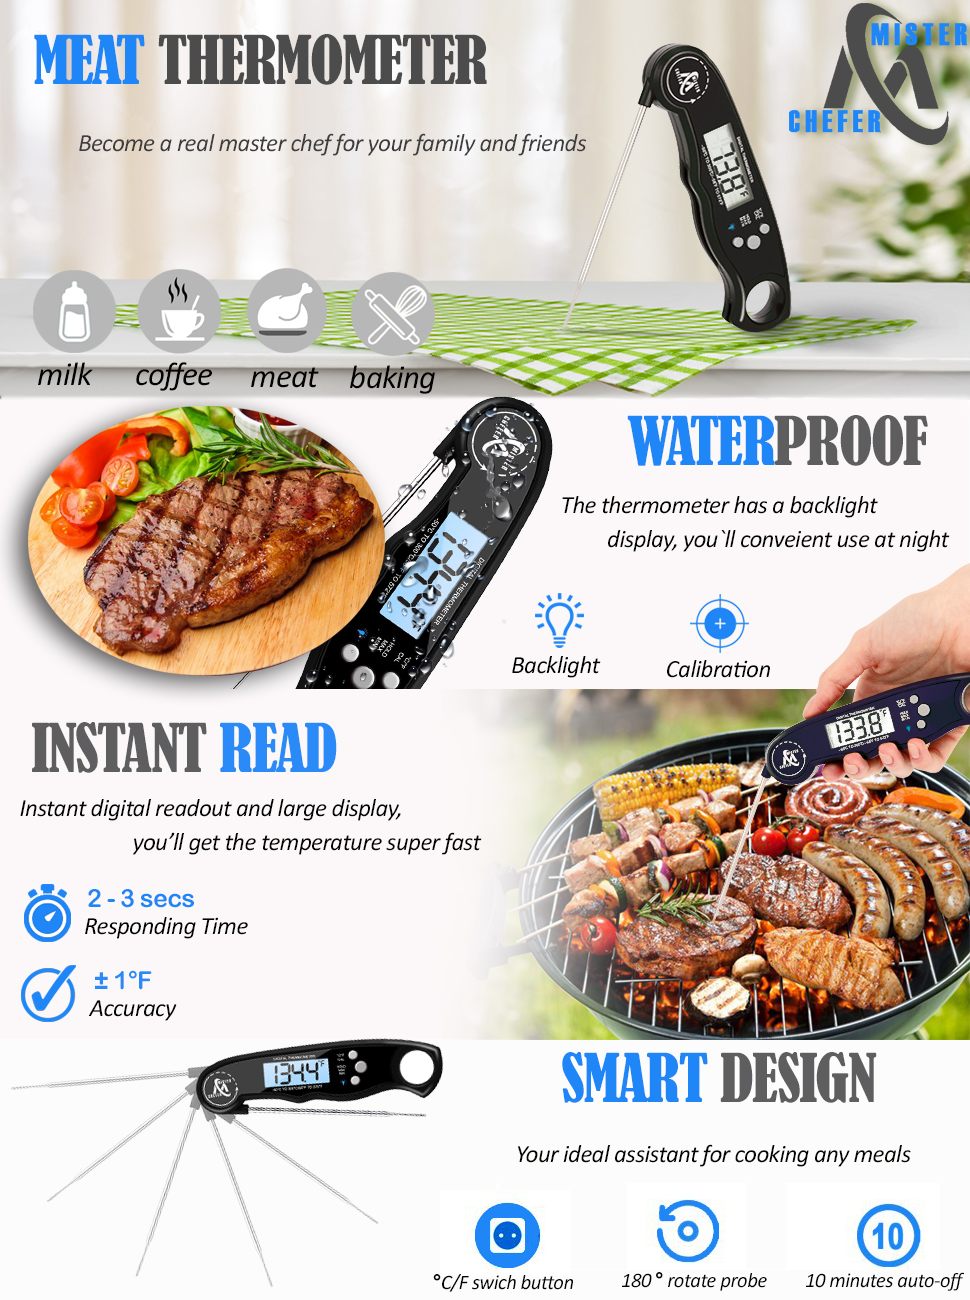 instant read thermometer mister chefer will make cooking more enjoyable and easier